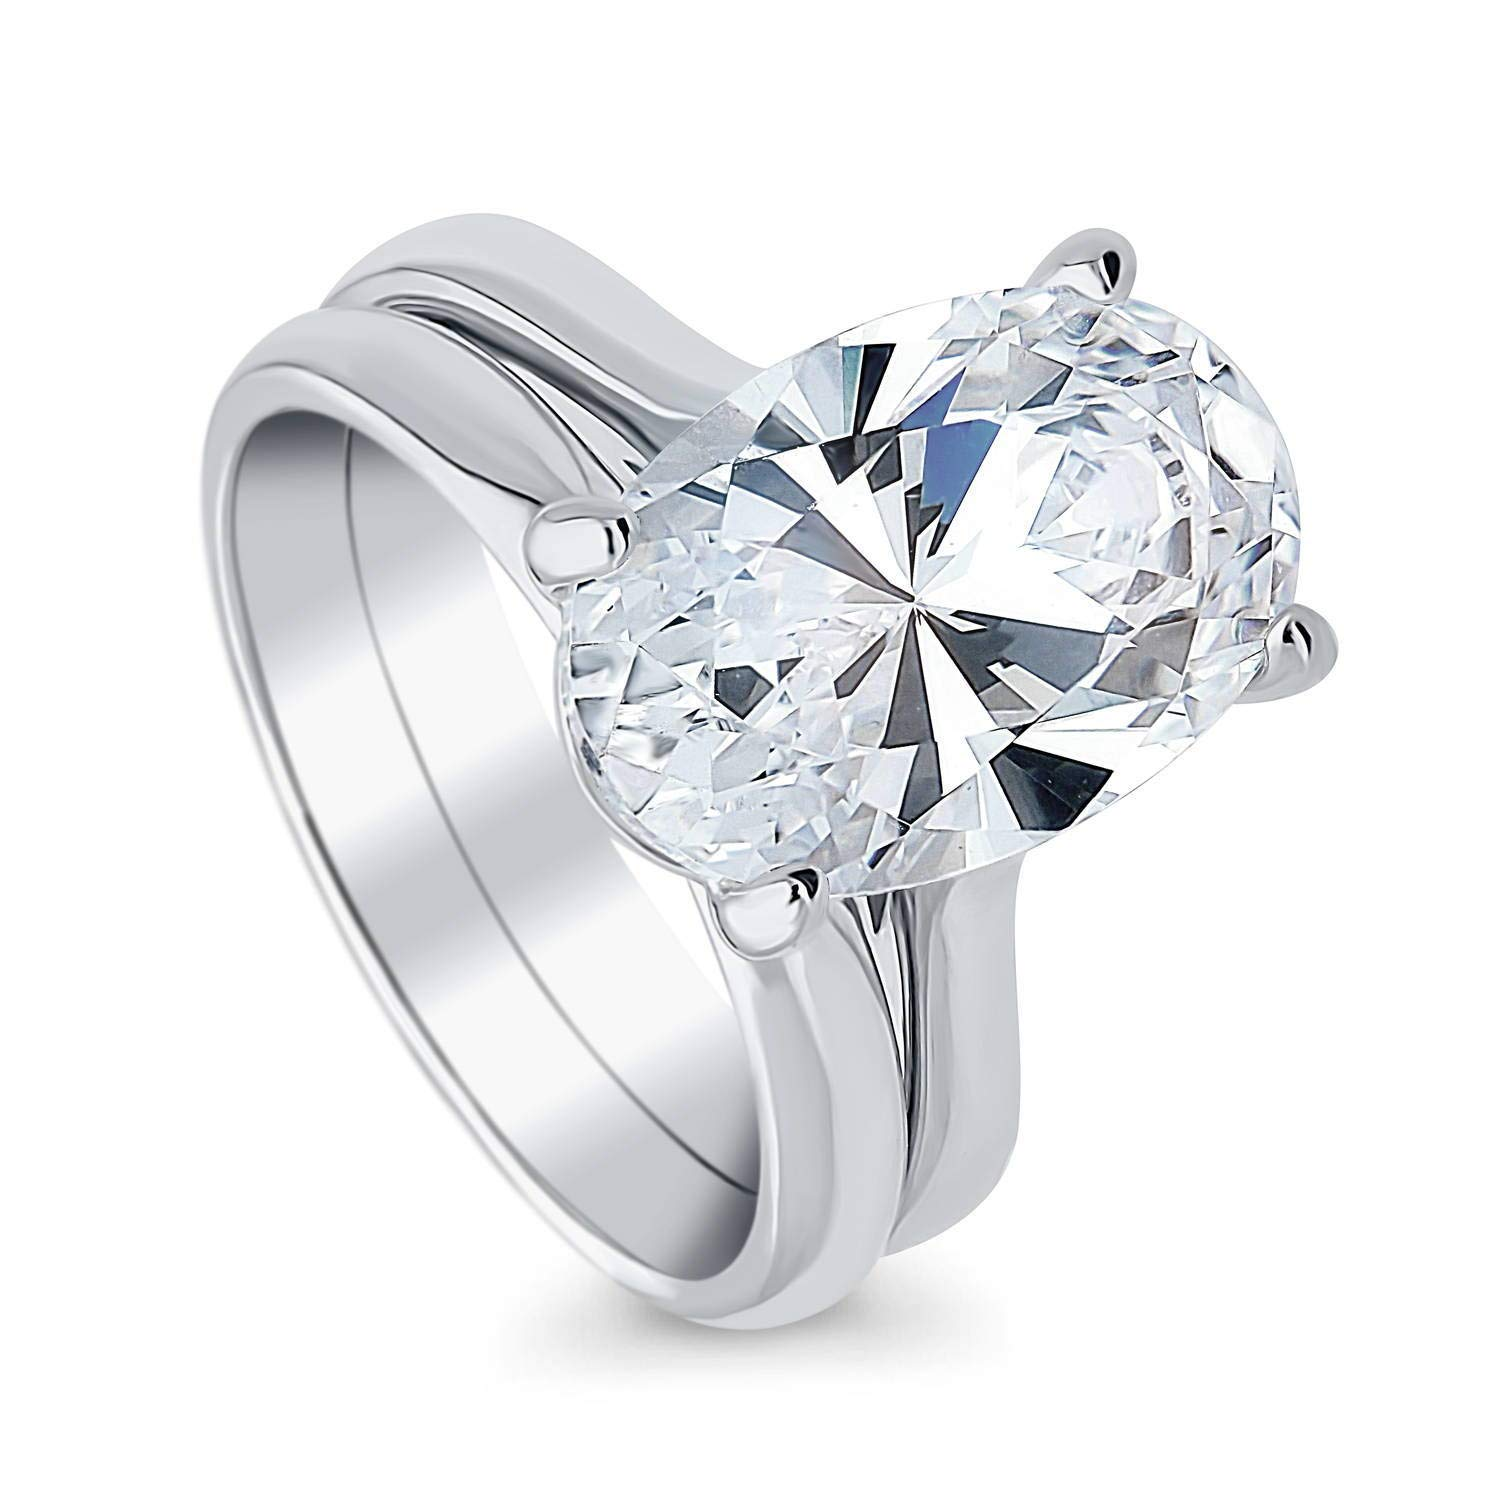 BERRICLE Rhodium Plated Sterling Silver Oval Cut Cubic Zirconia CZ Solitaire Engagement Wedding Ring Set 5.5 CTW Size 9